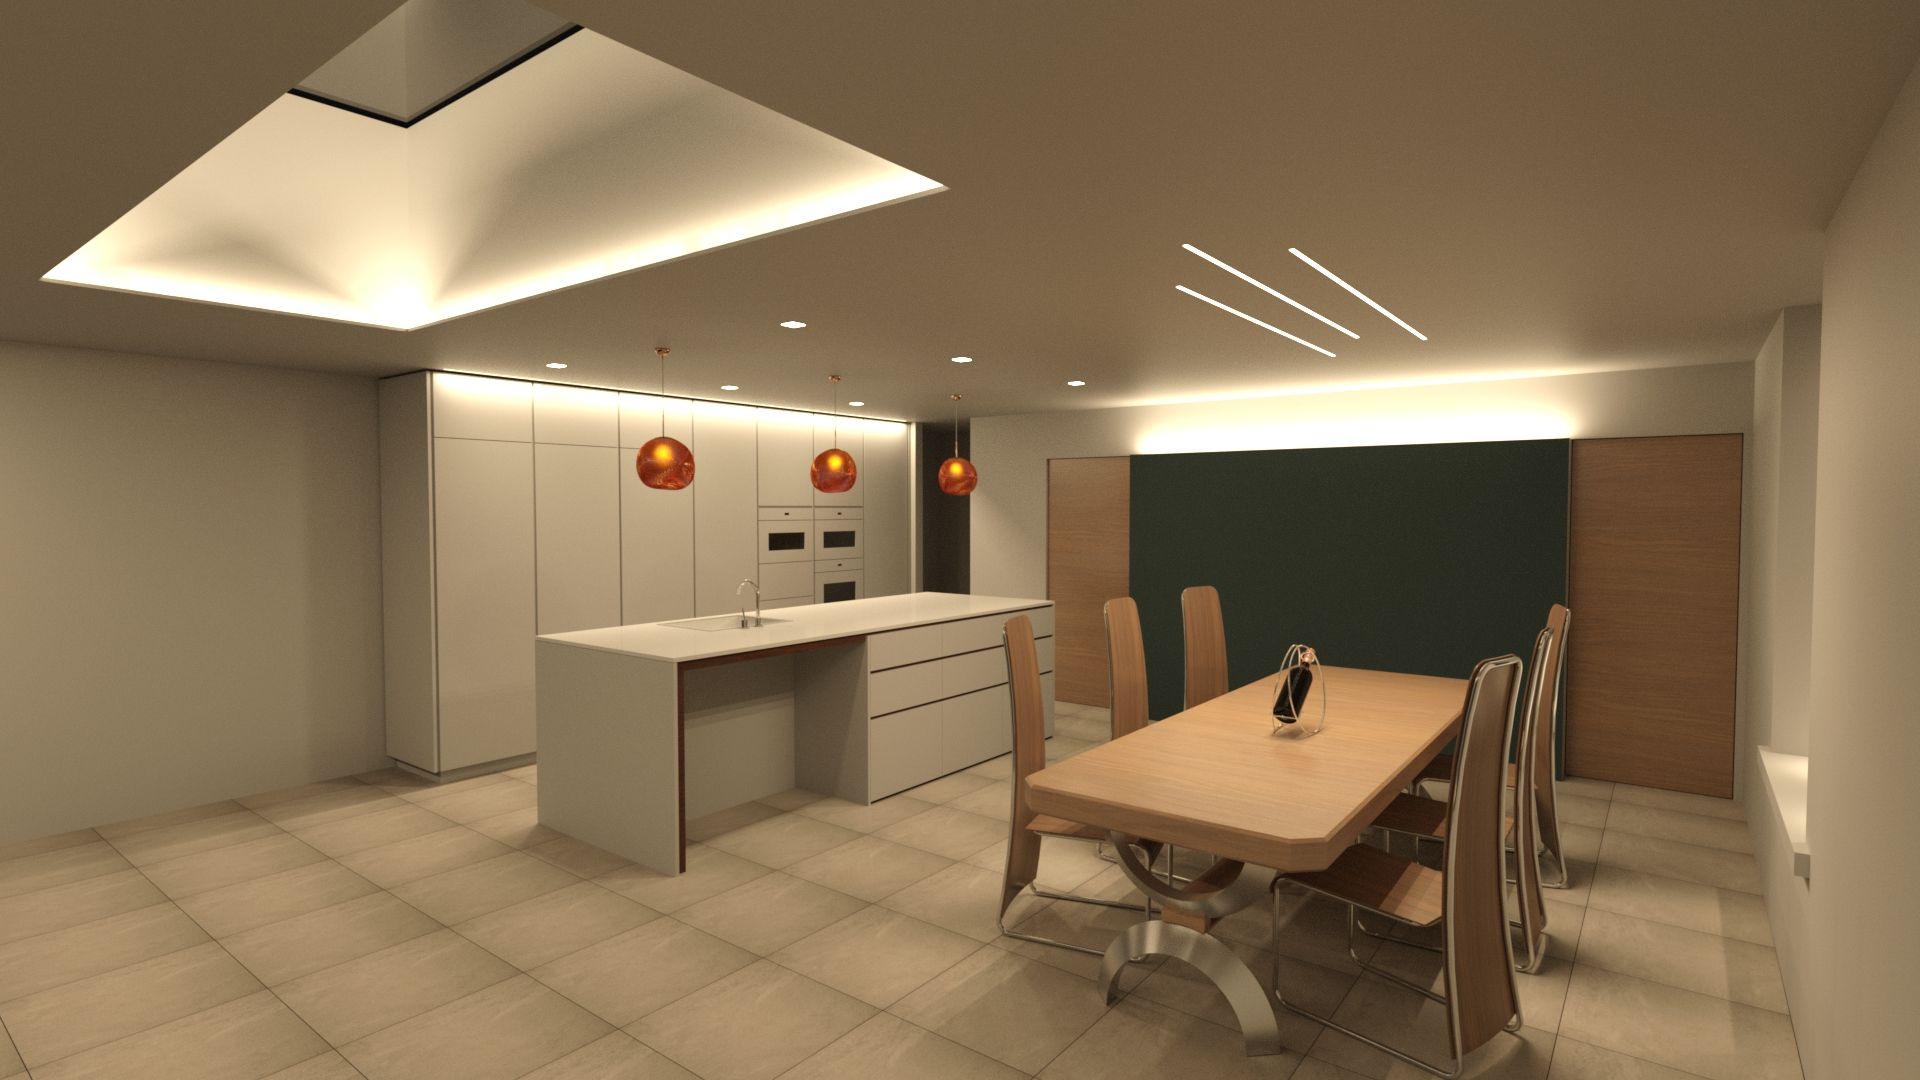 kitchen lighting render visualisation example by